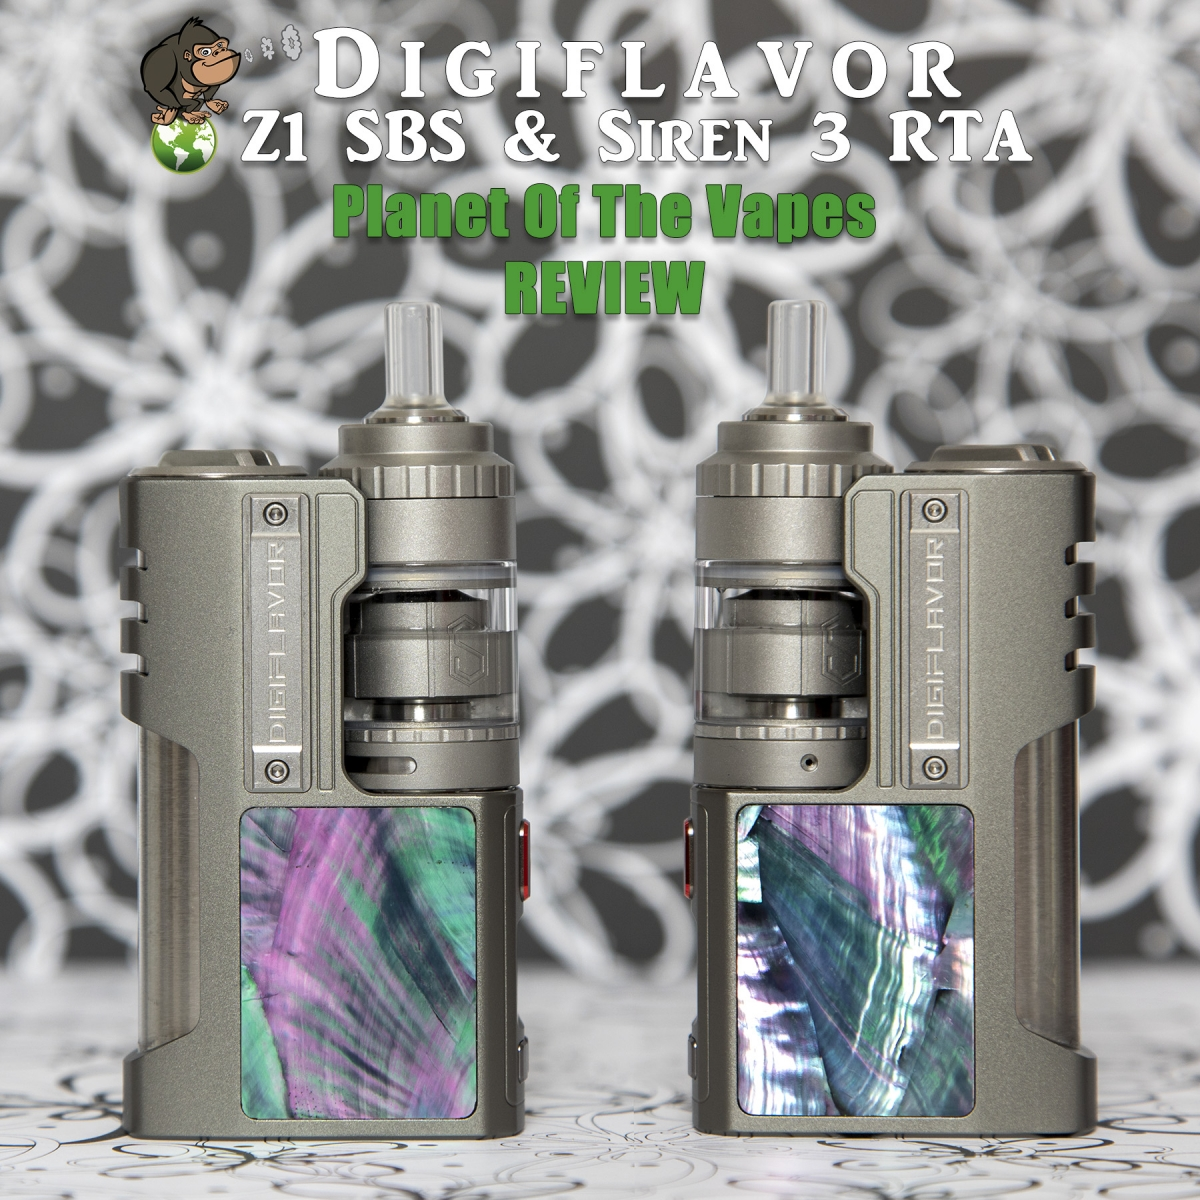 Digiflavor Z1 SBS and Siren3 GTA Kit review